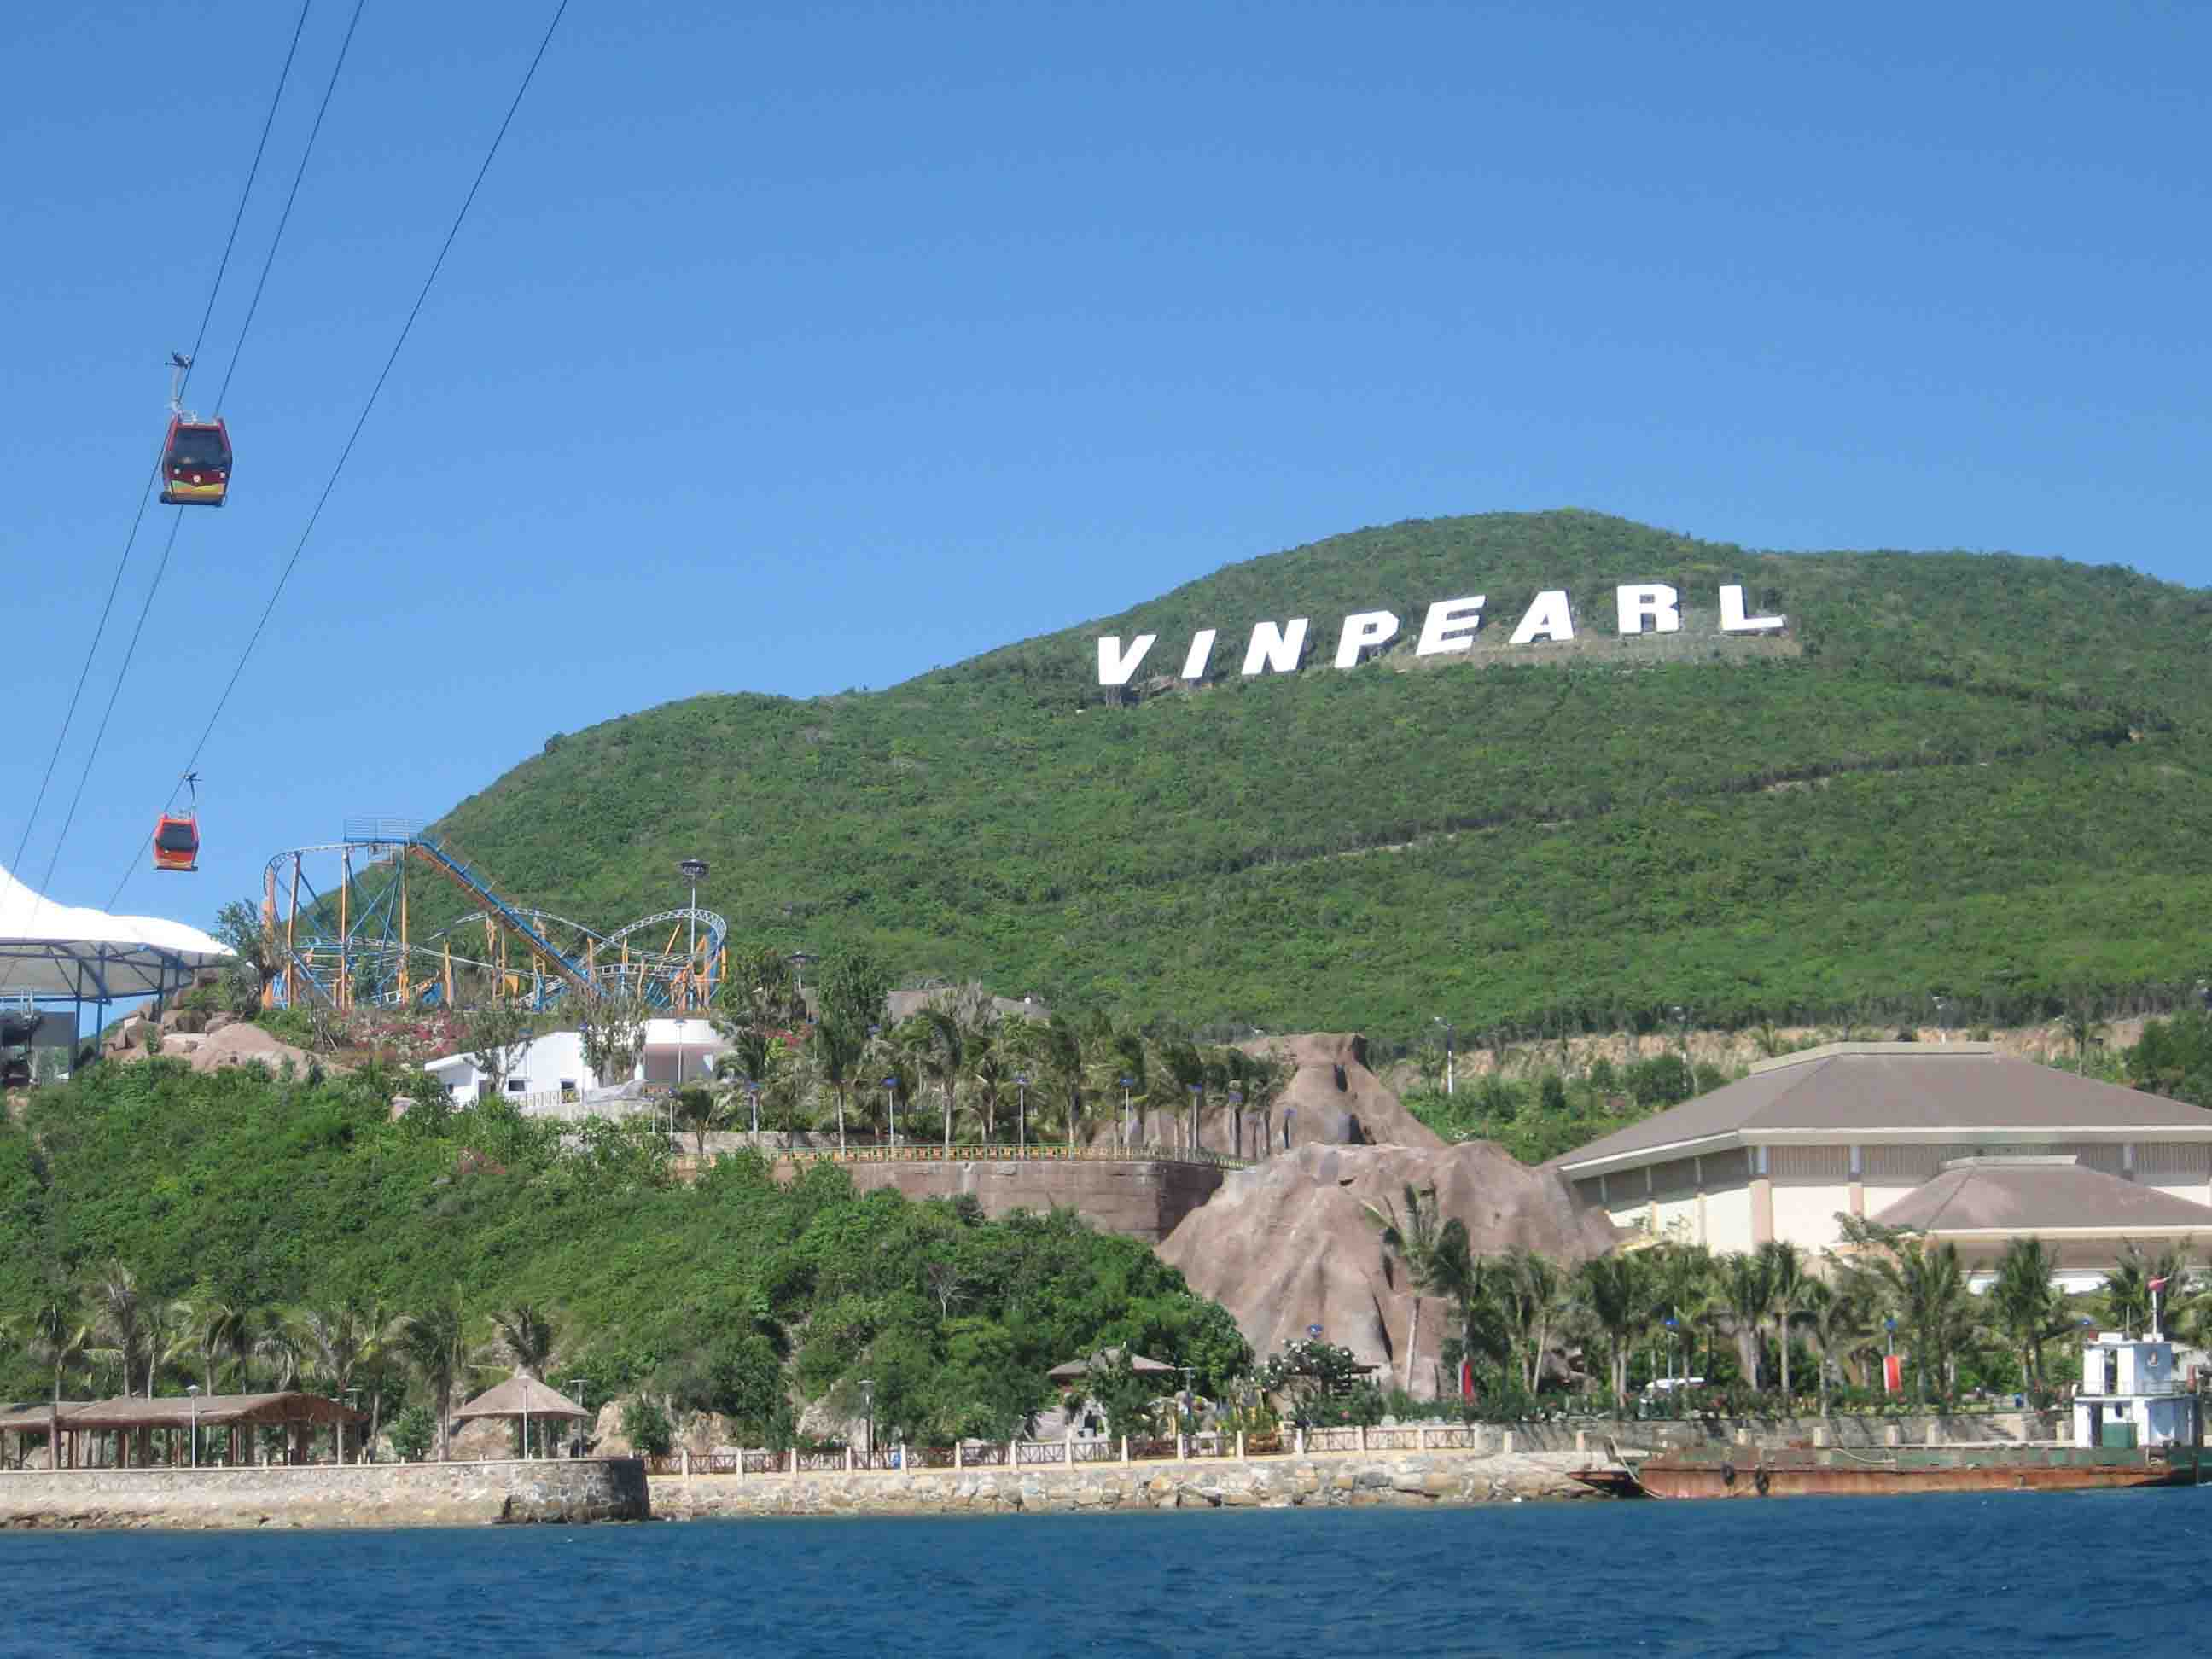 Vinpearland